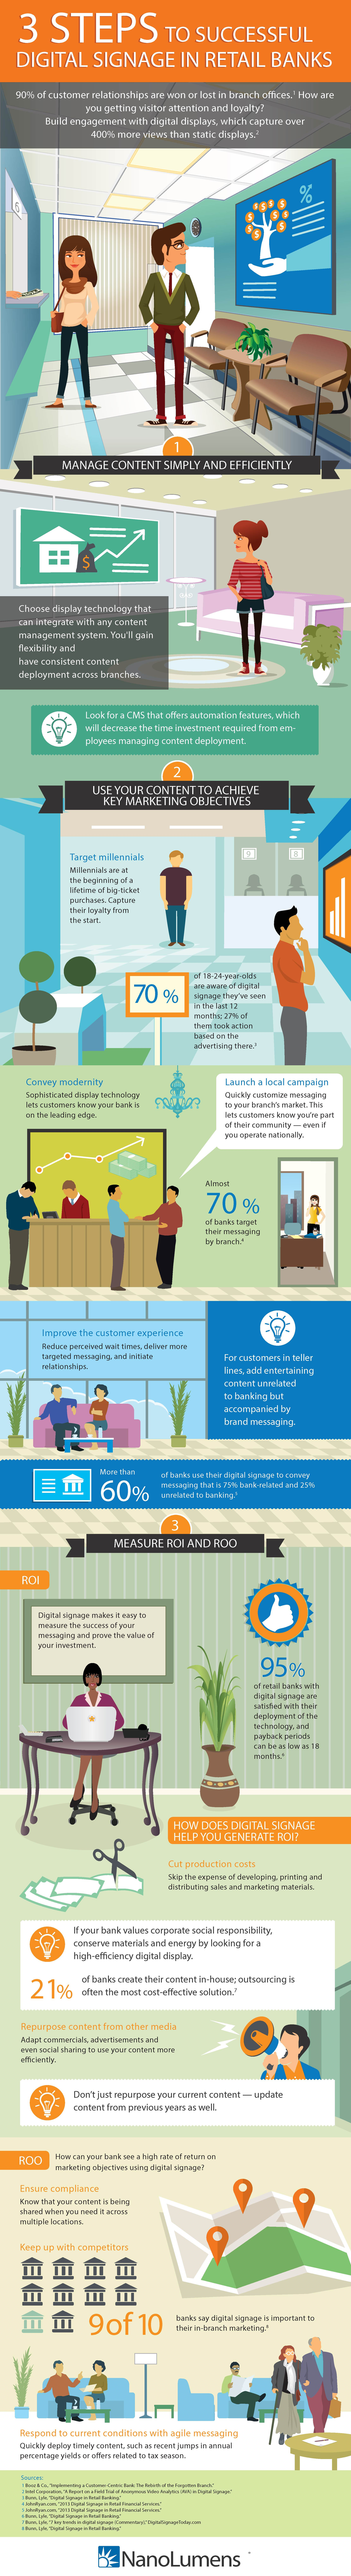 infographic retail banking digital signage 3step success